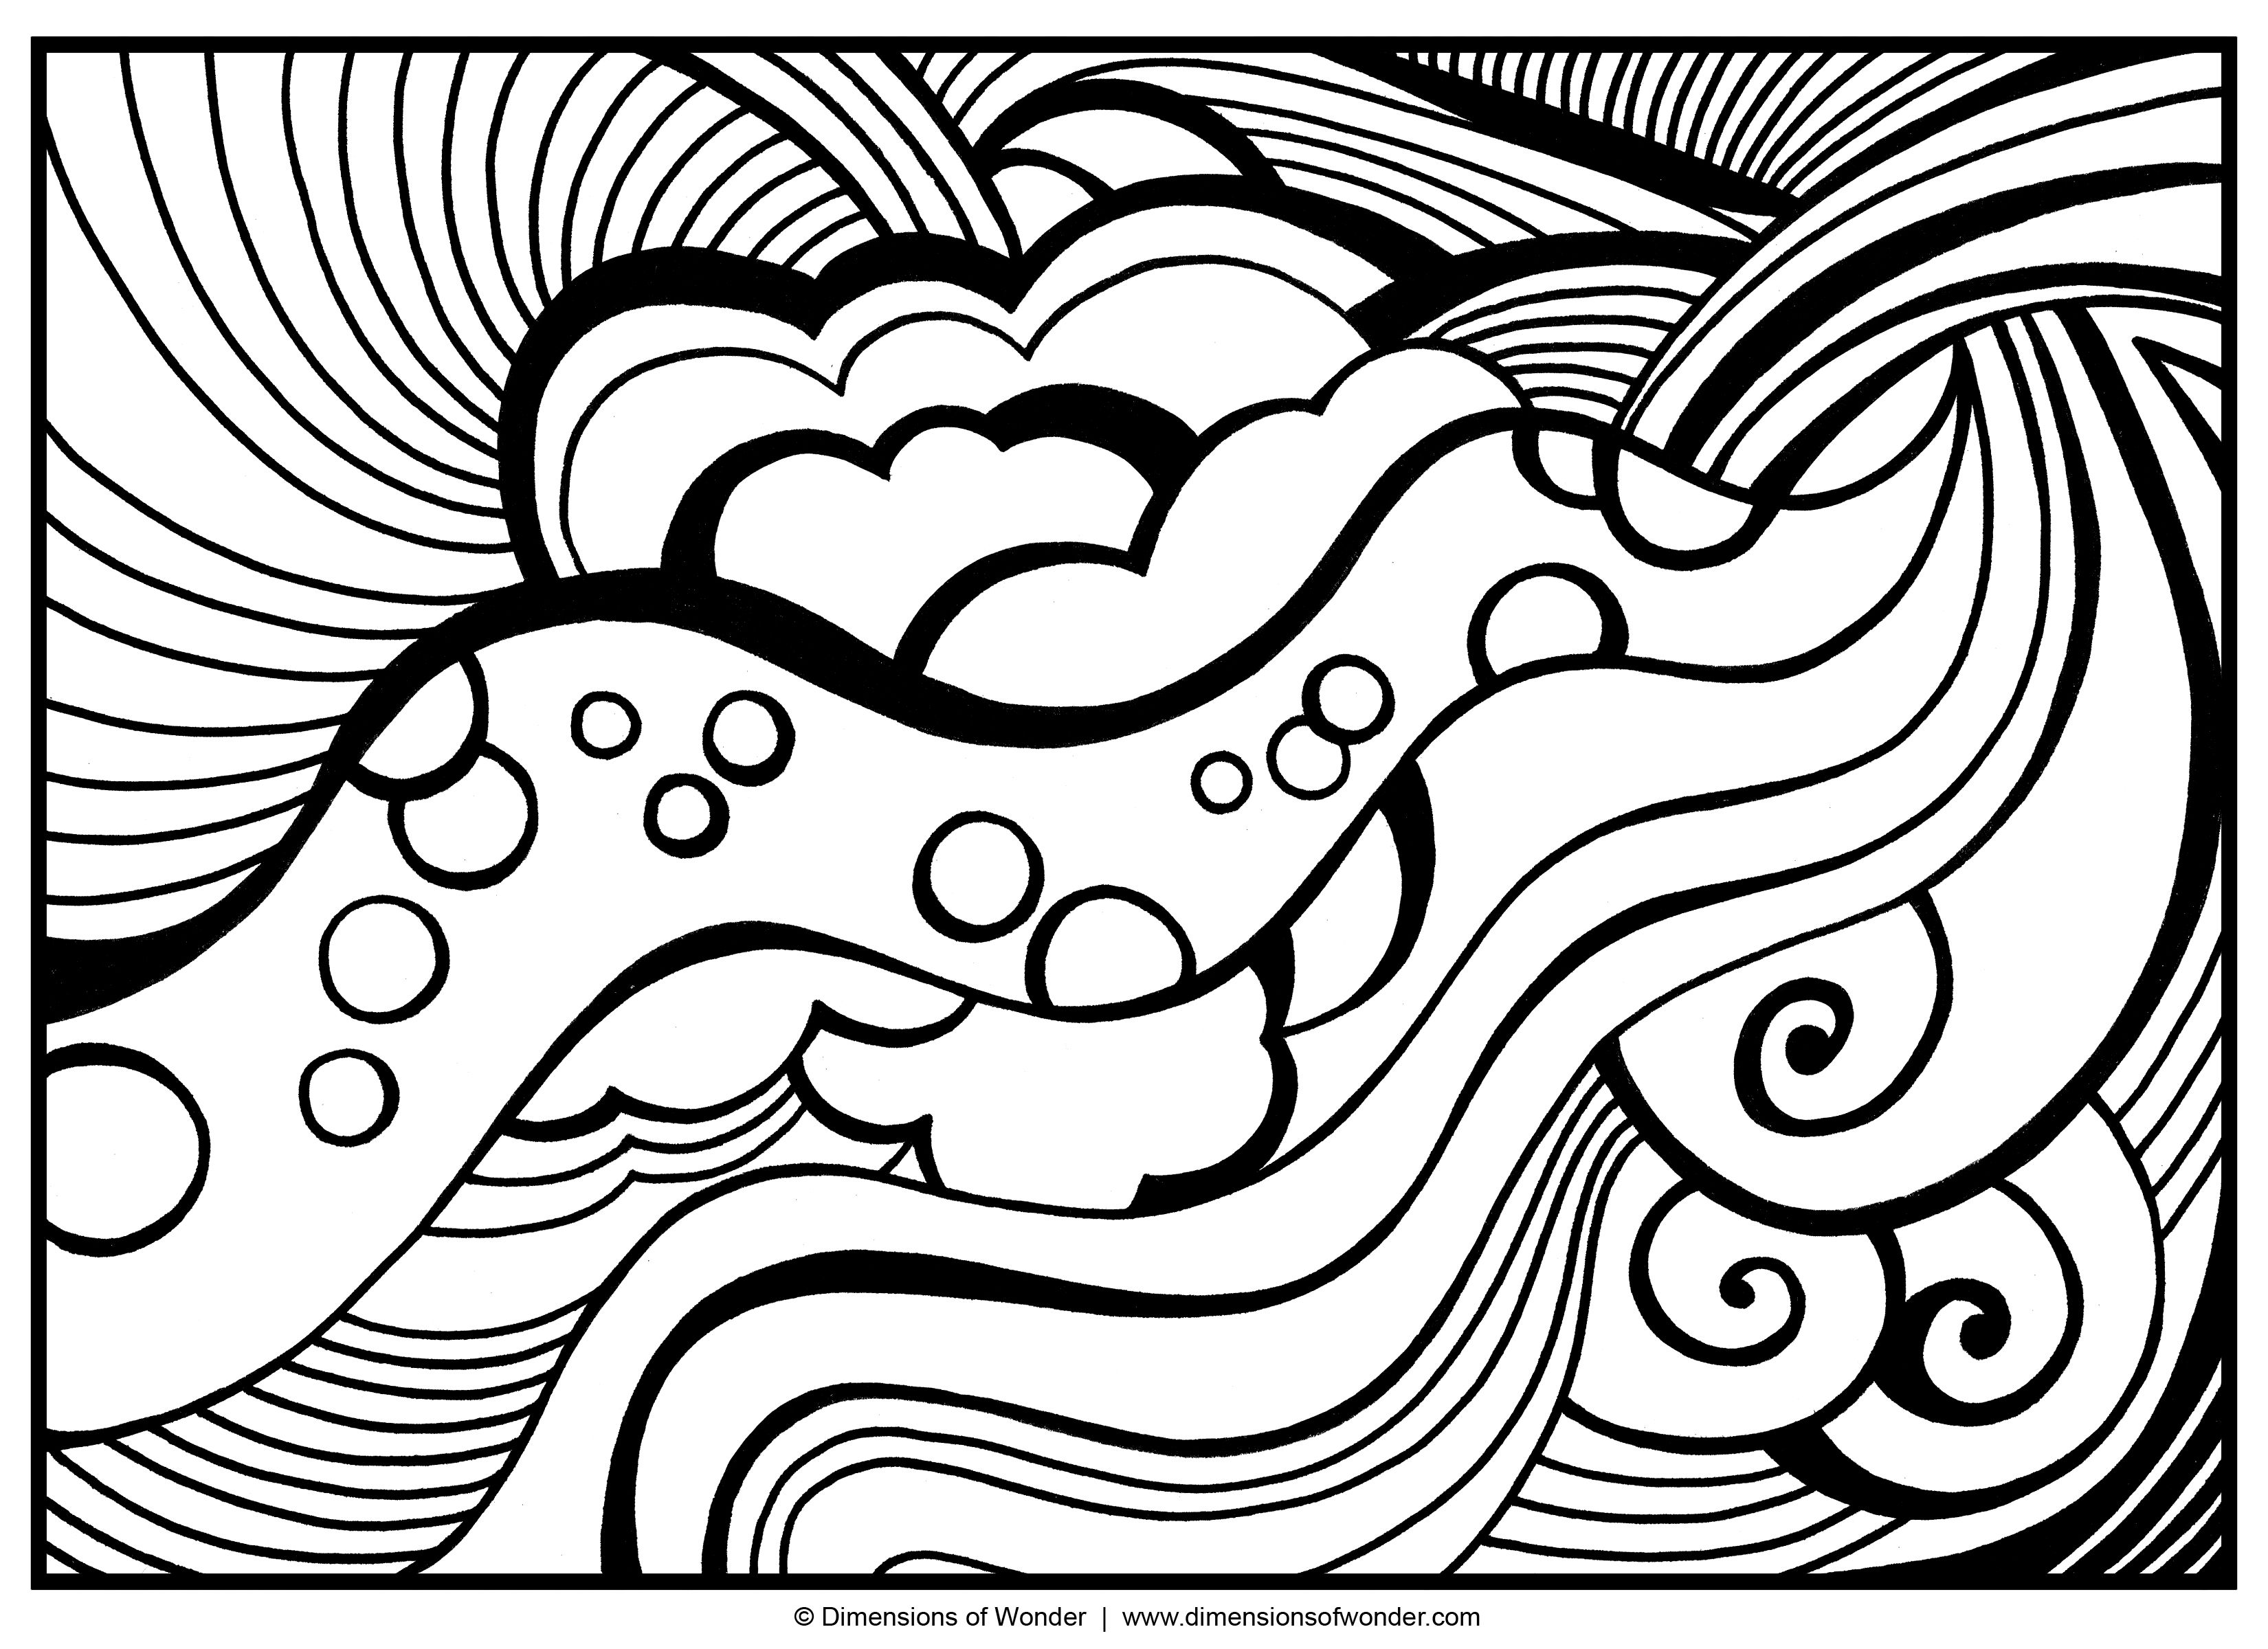 Free coloring pages for adults abstract - Abstract Coloring Pages Free Large Images